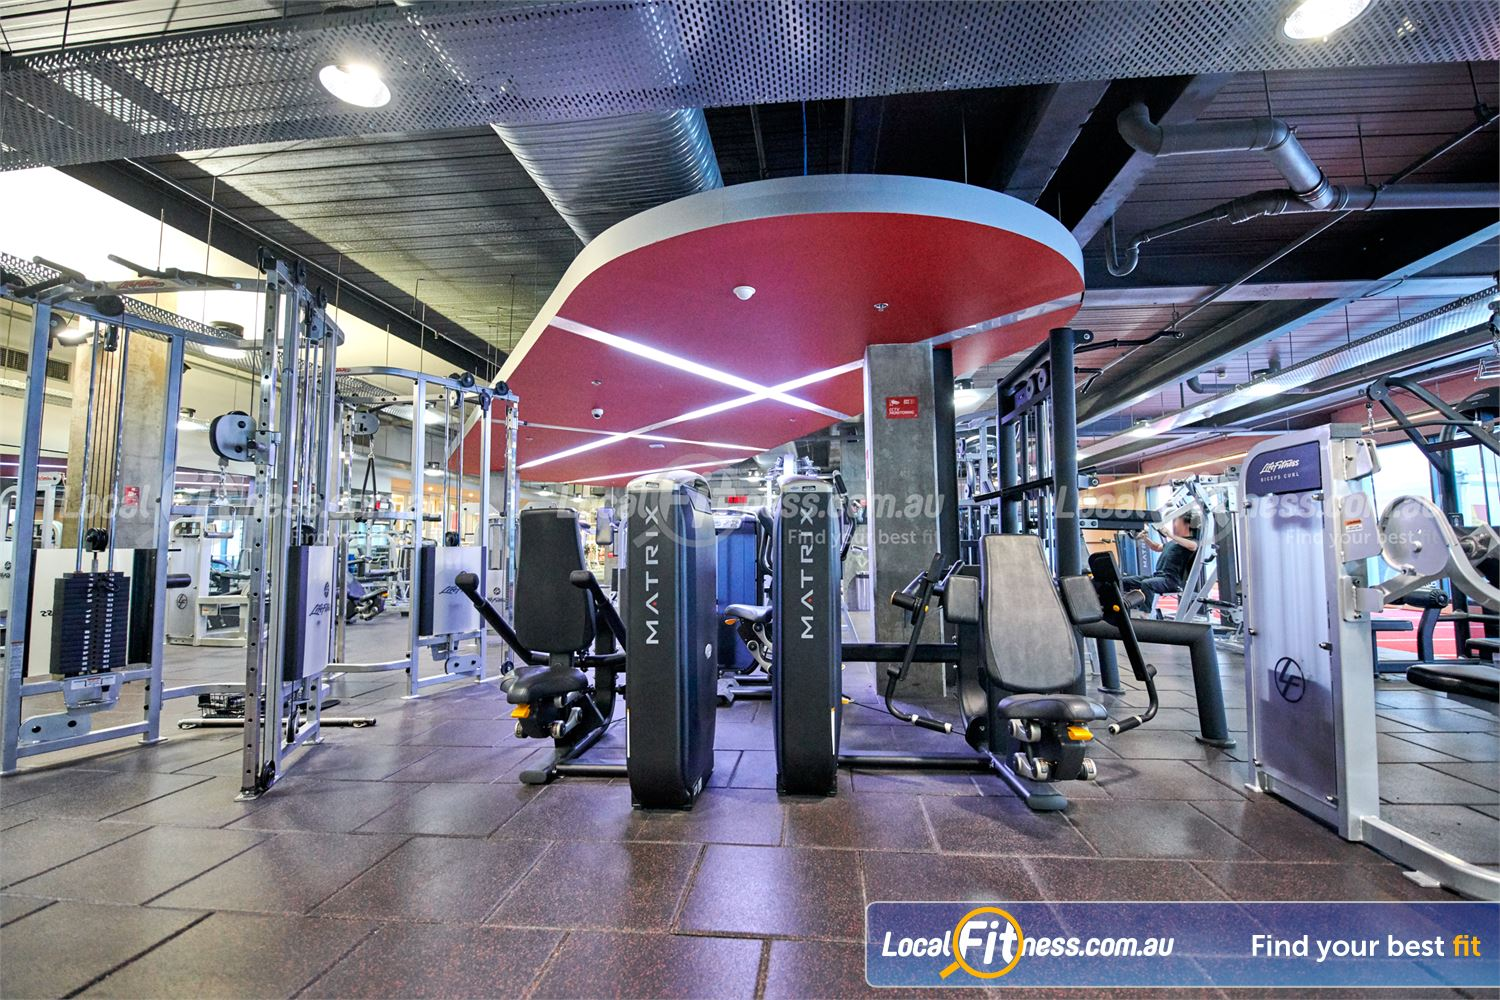 Fitness First Victoria Gardens Richmond Our Richmond gym includes equipment from leading brands such as MATRIX and Life Fitness.